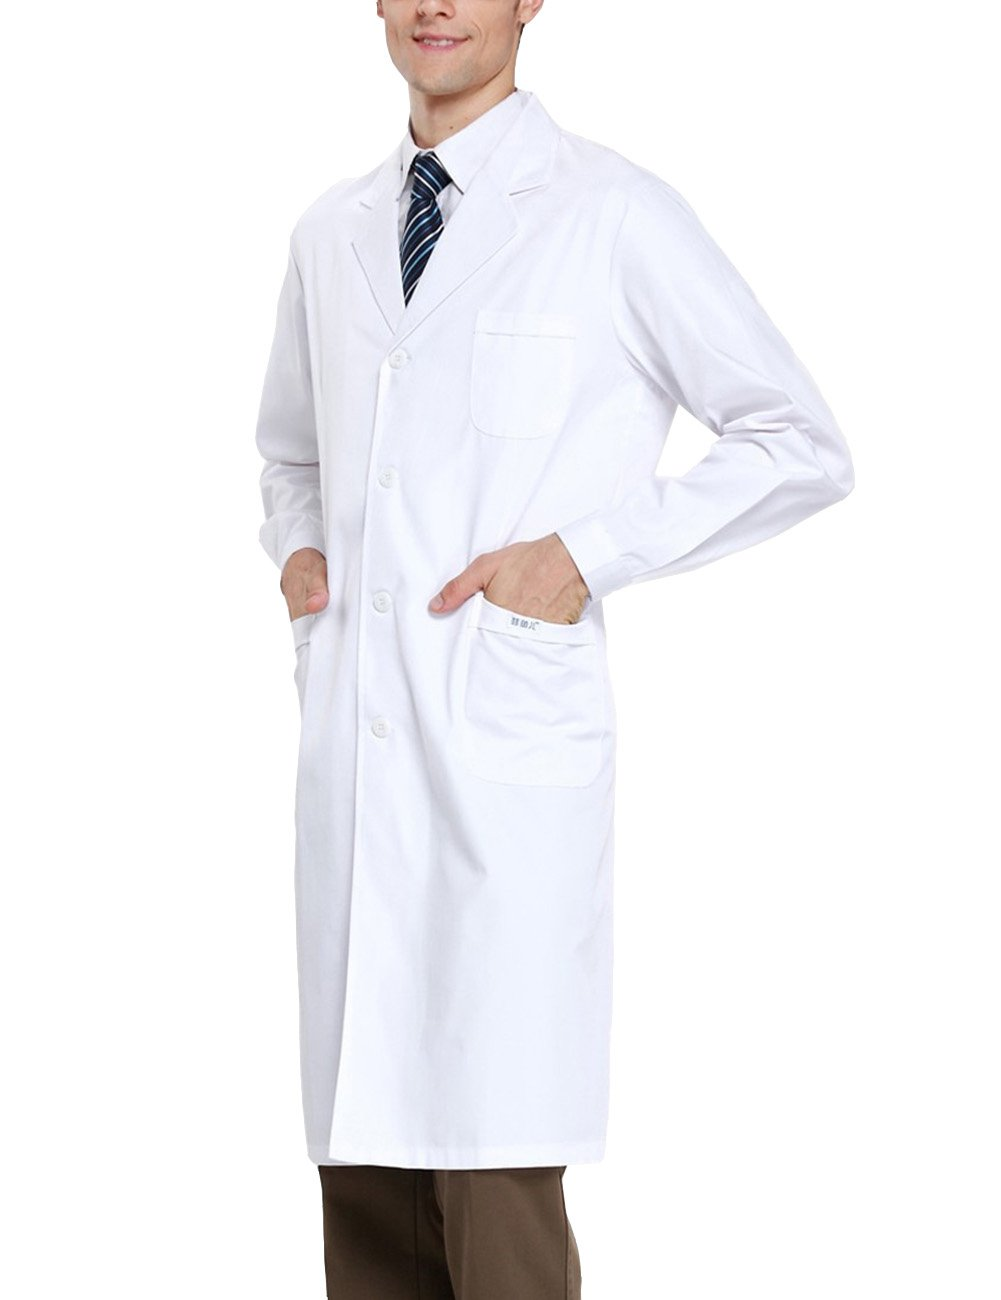 THEE White Long Sleeve Health Nurse Medical Laboratory Lab Coat Unisex by THEE